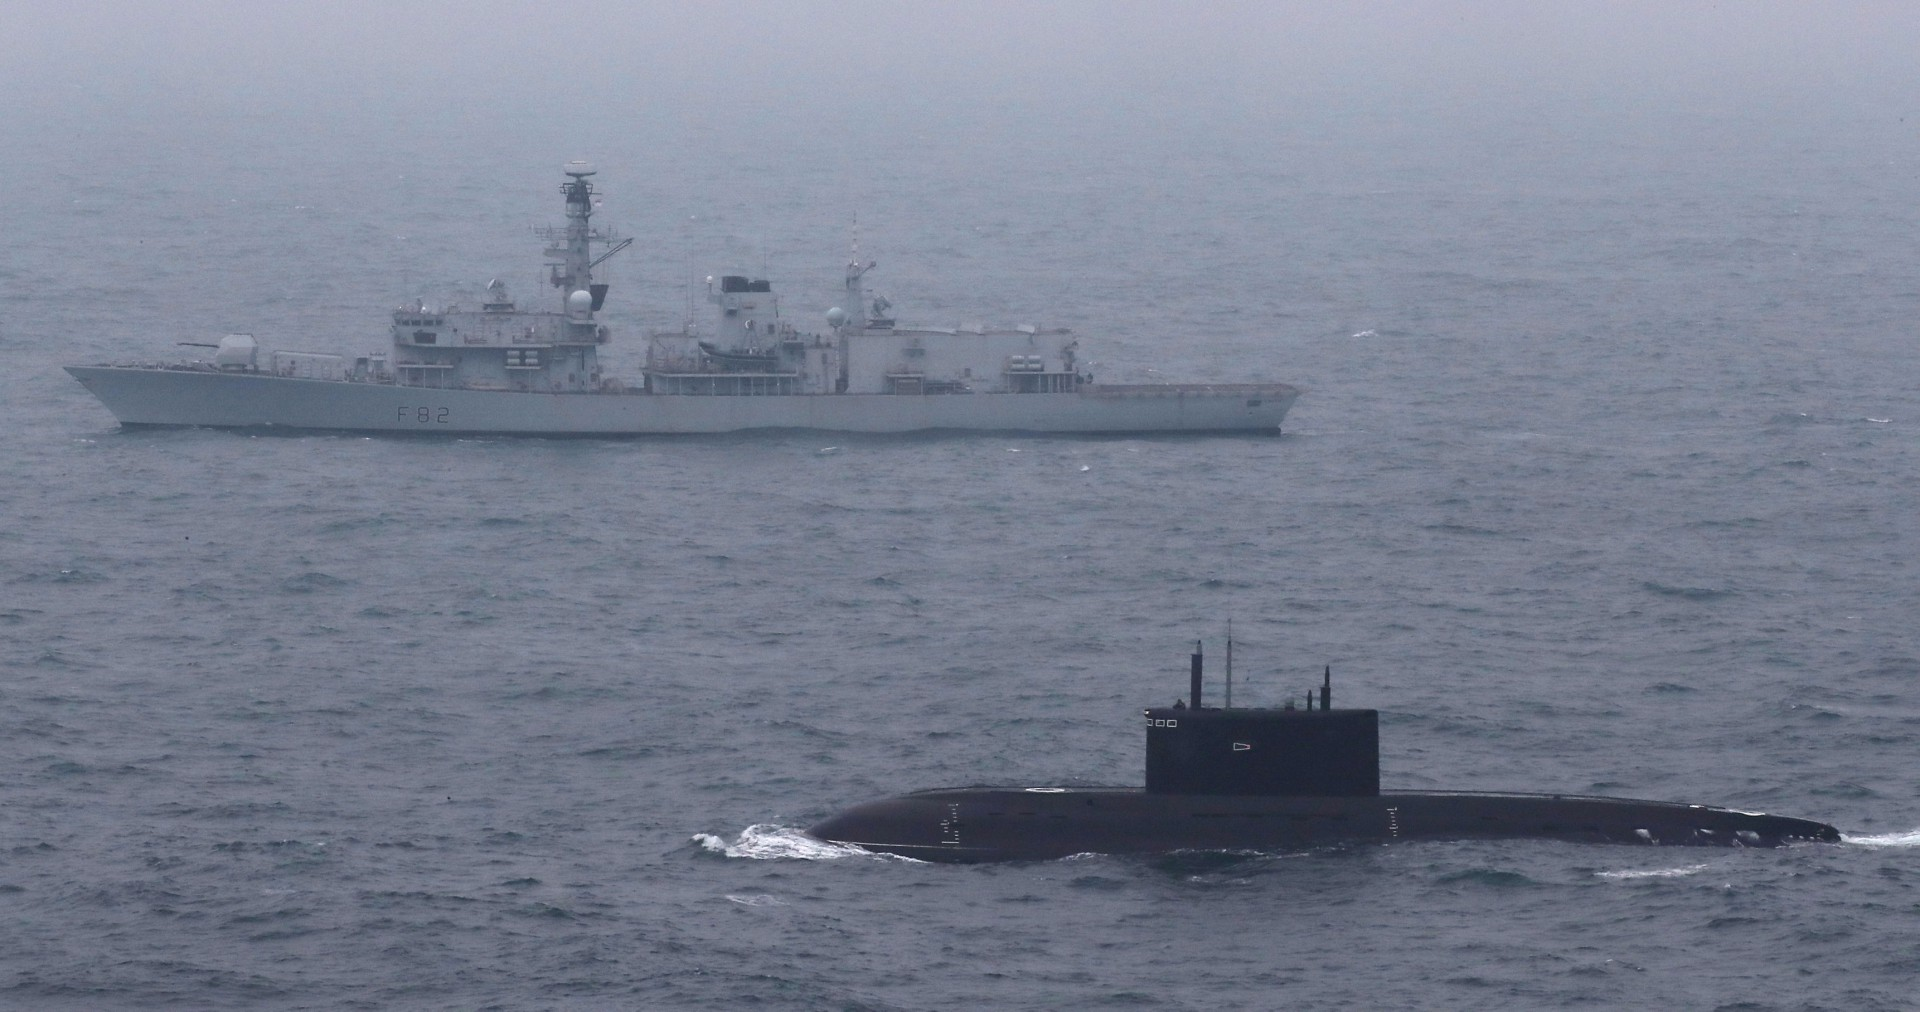 Ministry of Defence handout photo dated 06/05/17 of Royal Navy Type 23 Frigate HMS Somerset escorting a Russian submarine through the English Channel. PRESS ASSOCIATION Photo. Issue date: Monday May 8, 2017. HMS Somerset located the diesel-electric submarine Krasnodar off the east coast of the UK on Friday morning. See PA story DEFENCE Russia. Photo credit should read: LPhot Dan Rosenbaum/Royal Navy/MoD/Crown copyright/PA Wire  NOTE TO EDITORS: This handout photo may only be used in for editorial reporting purposes for the contemporaneous illustration of events, things or the people in the image or facts mentioned in the caption. Reuse of the picture may require further permission from the copyright holder.